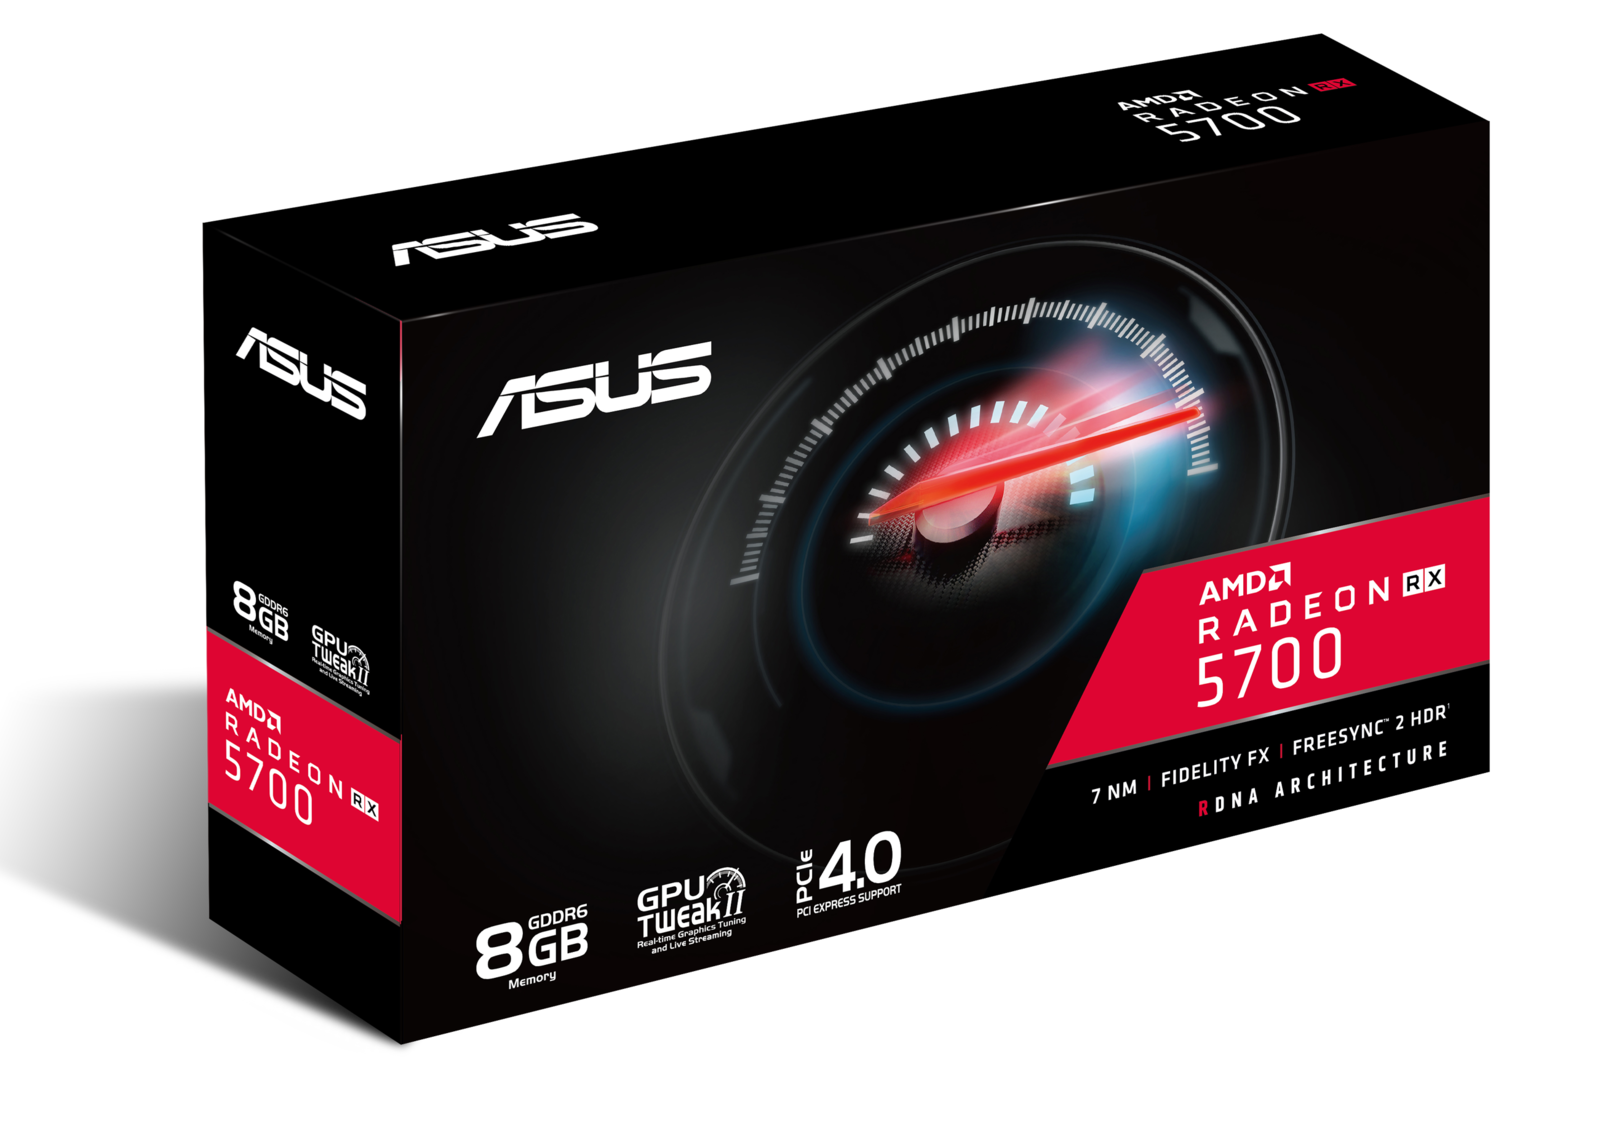 ASUS RX 5700 8GB Graphics Card image